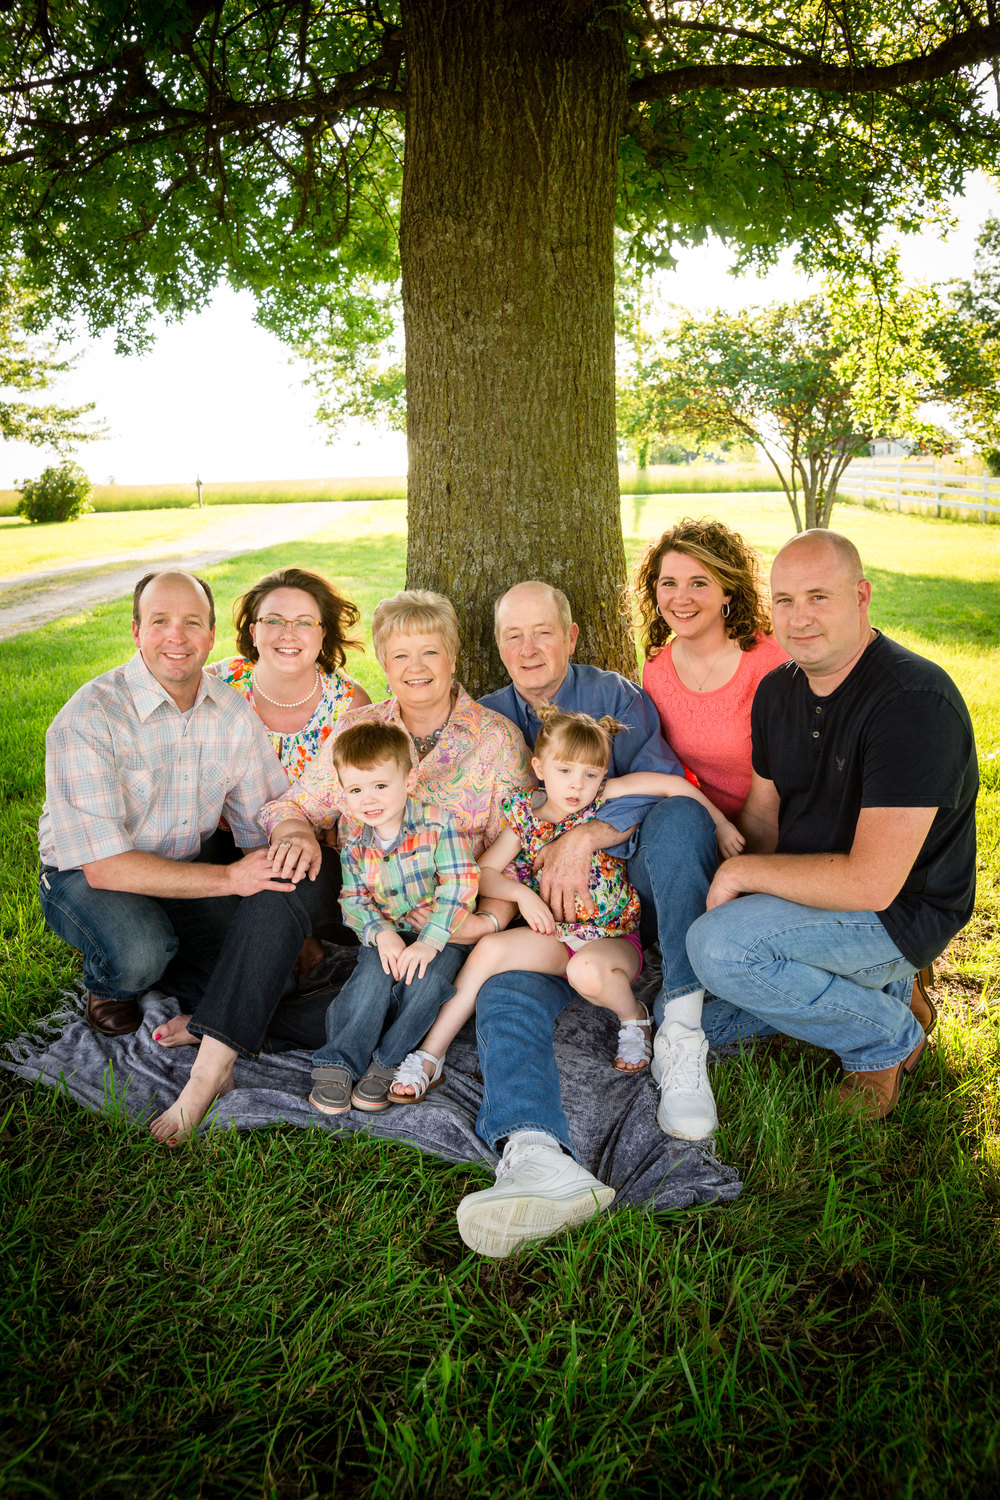 Brett-smith-photography-yokum-family1.jpg